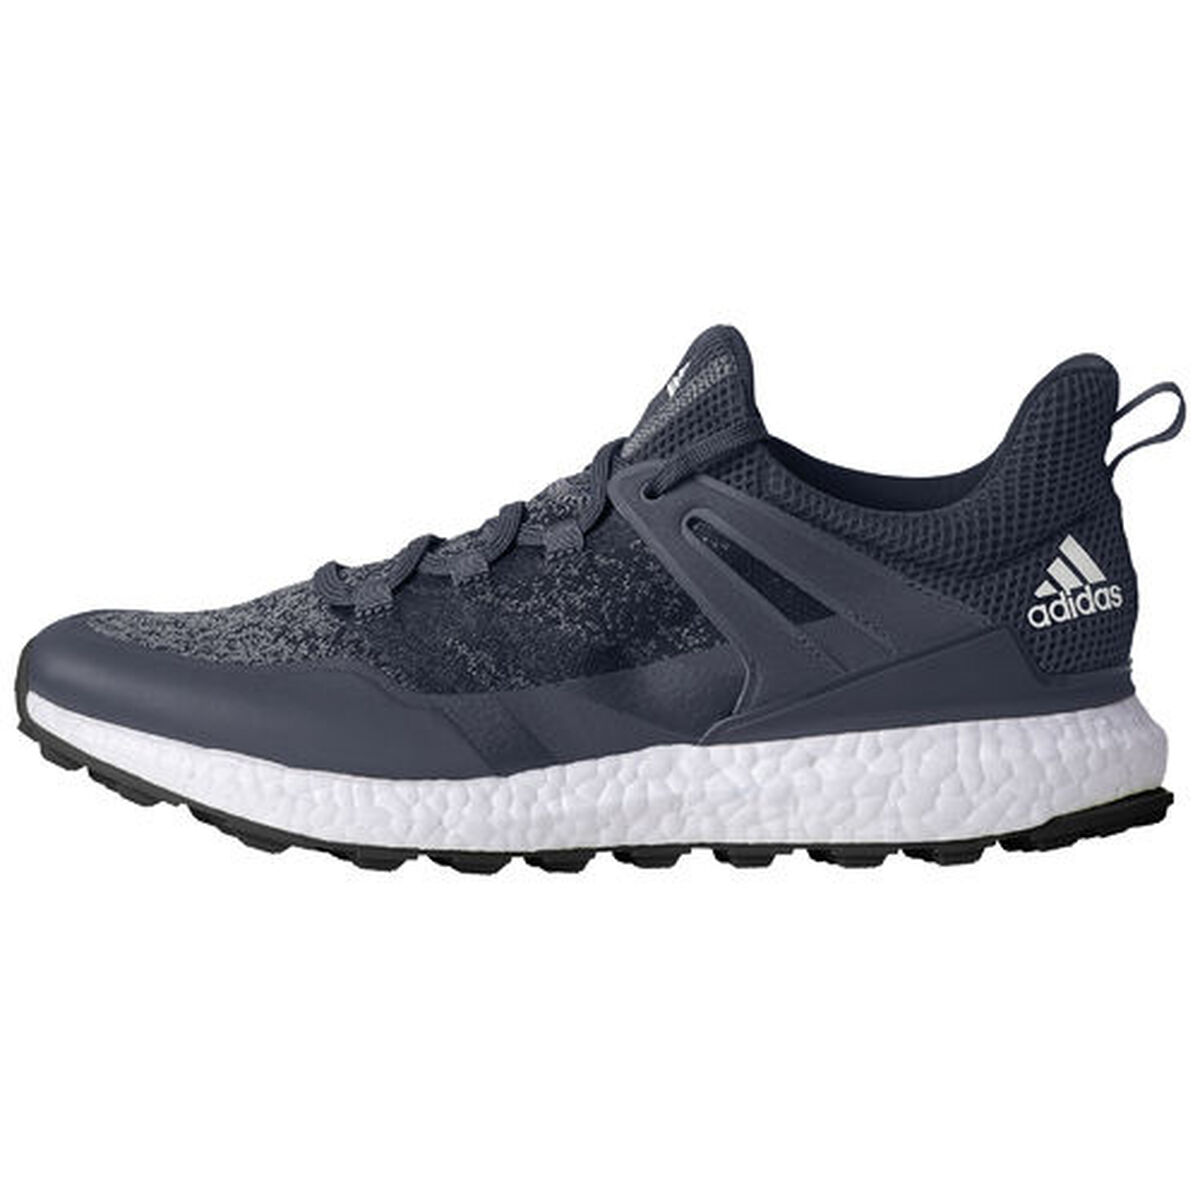 best service e3533 31188 Images. adidas Crossknit Boost Men39s Golf Shoe - GreyBlack